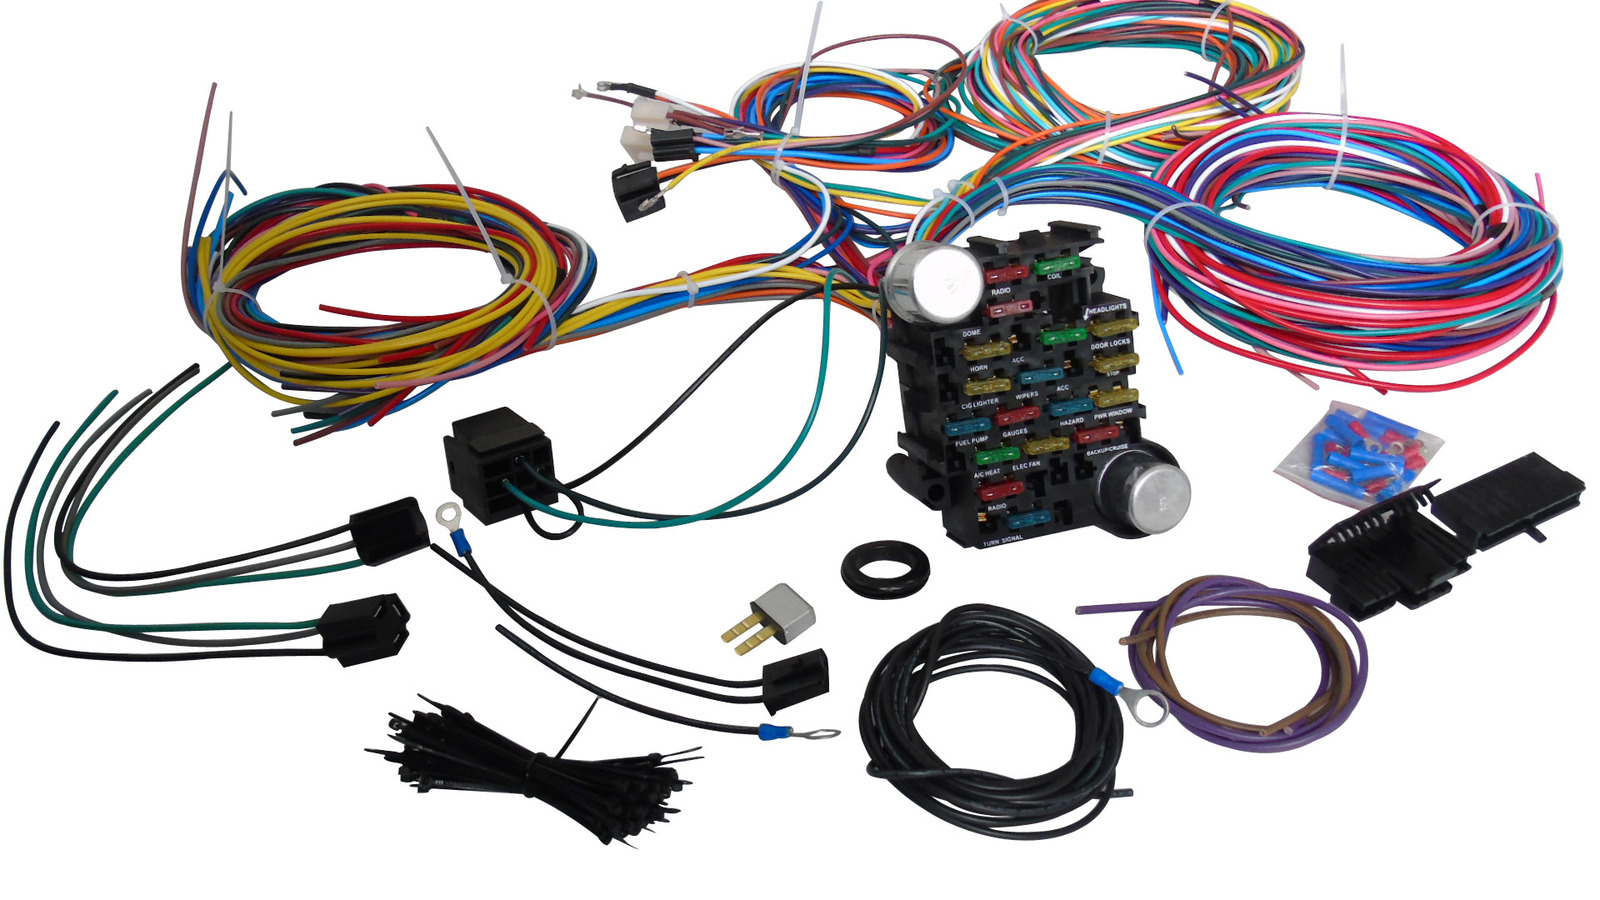 81 Camaro Wiring Harness 85 Corvette 67 Chevy 21 Circuit Universal Wire Kit Xl Rh Swperformanceparts Net 79 1981 Radio